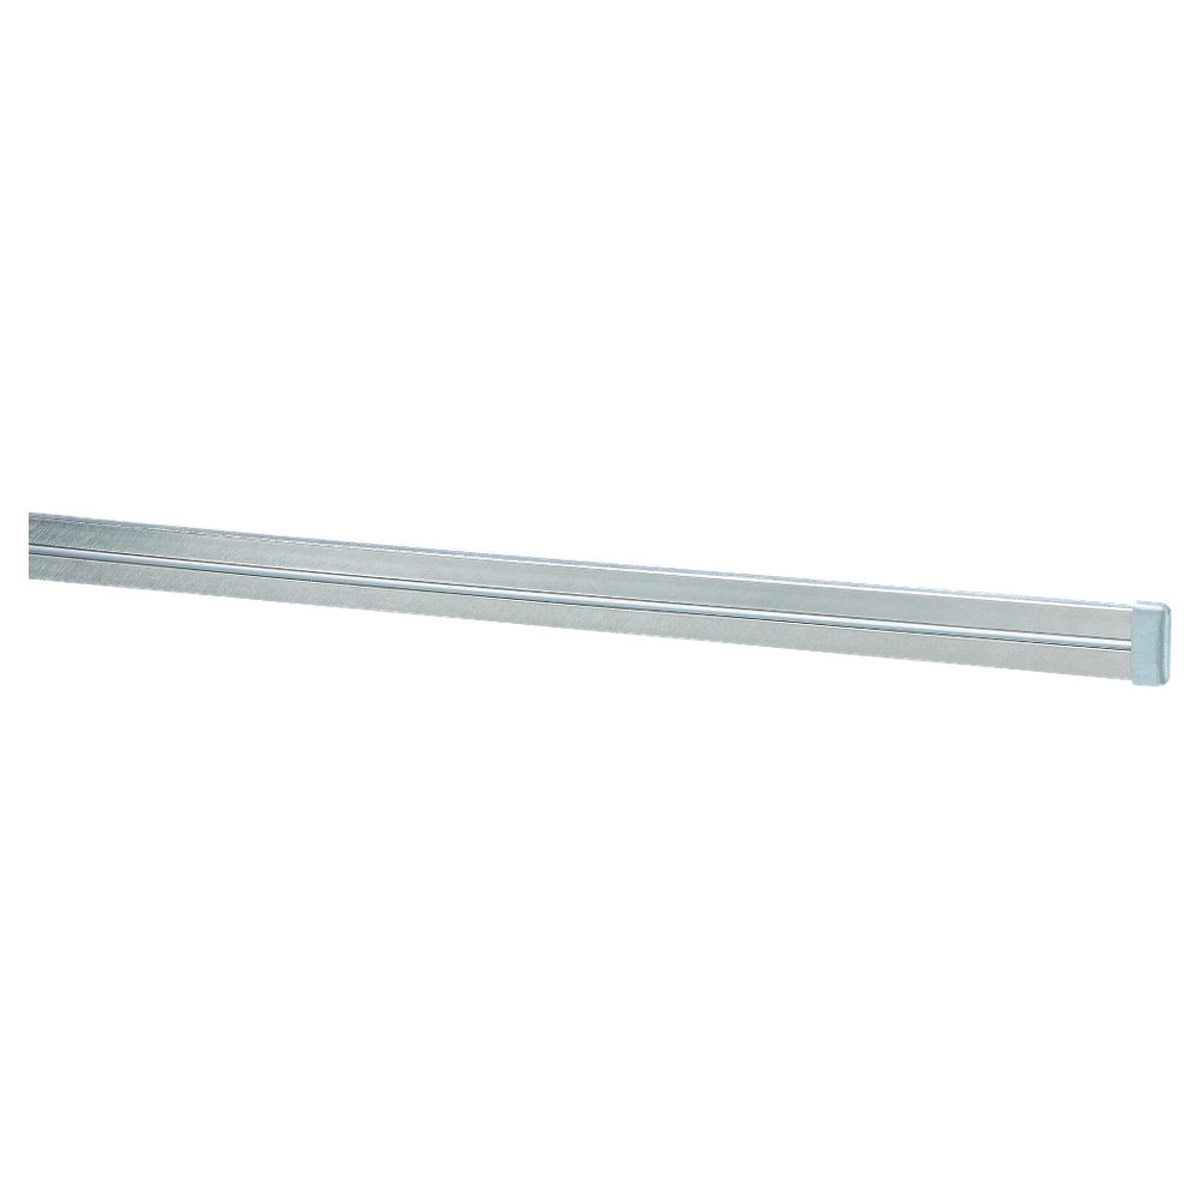 Sea Gull Lighting RTx Four Foot Rail in Brushed Stainless 95300-98